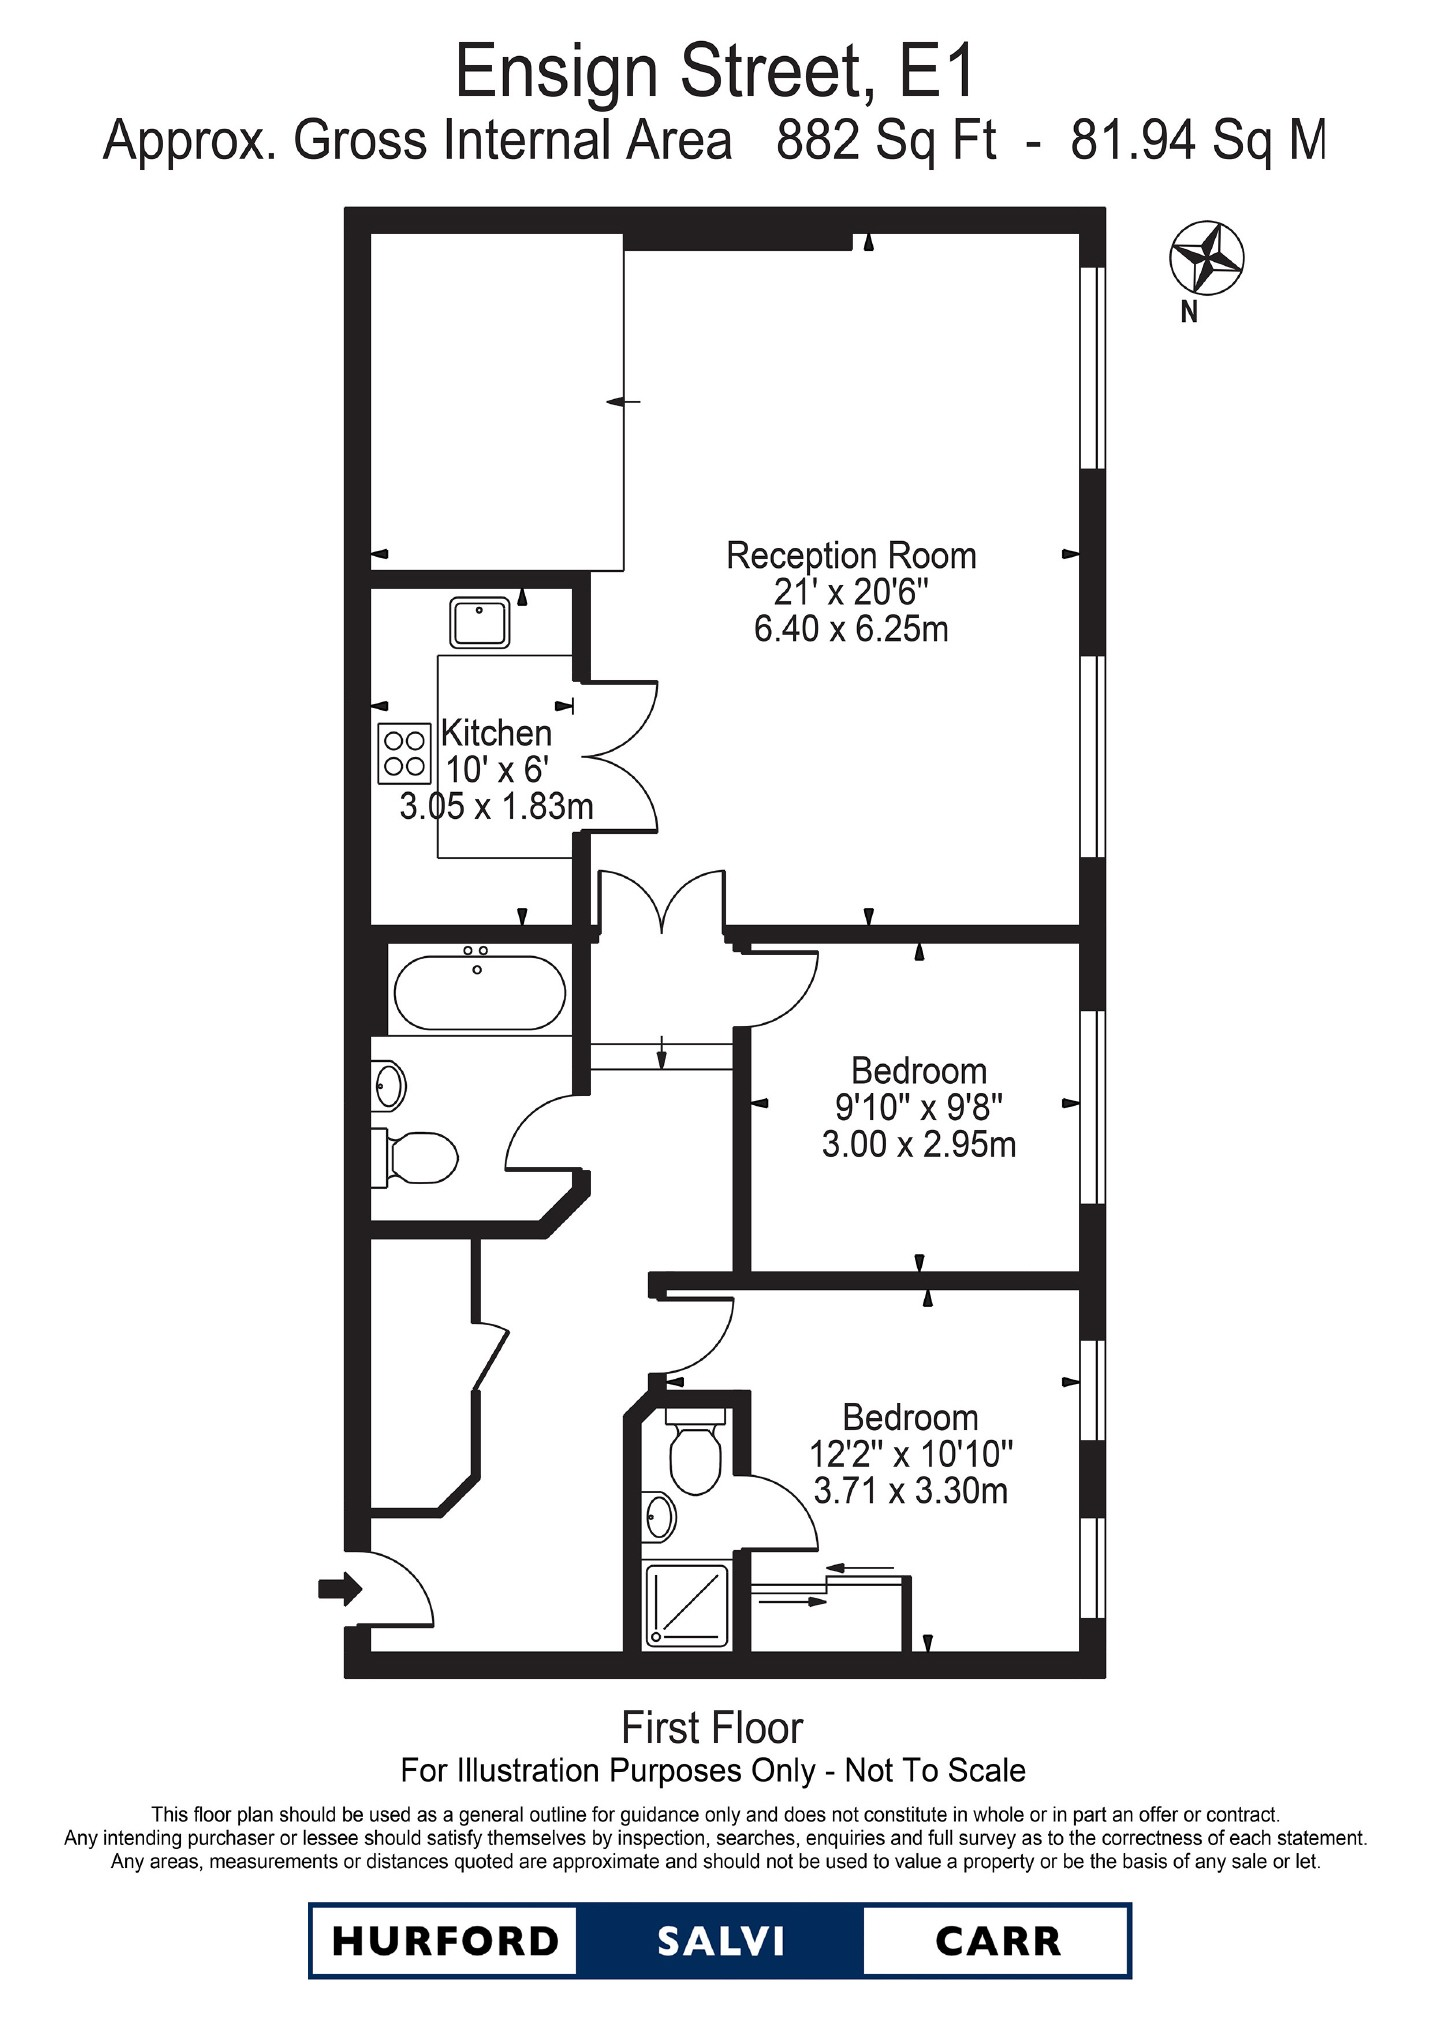 Ensign Street, E1 floorplan